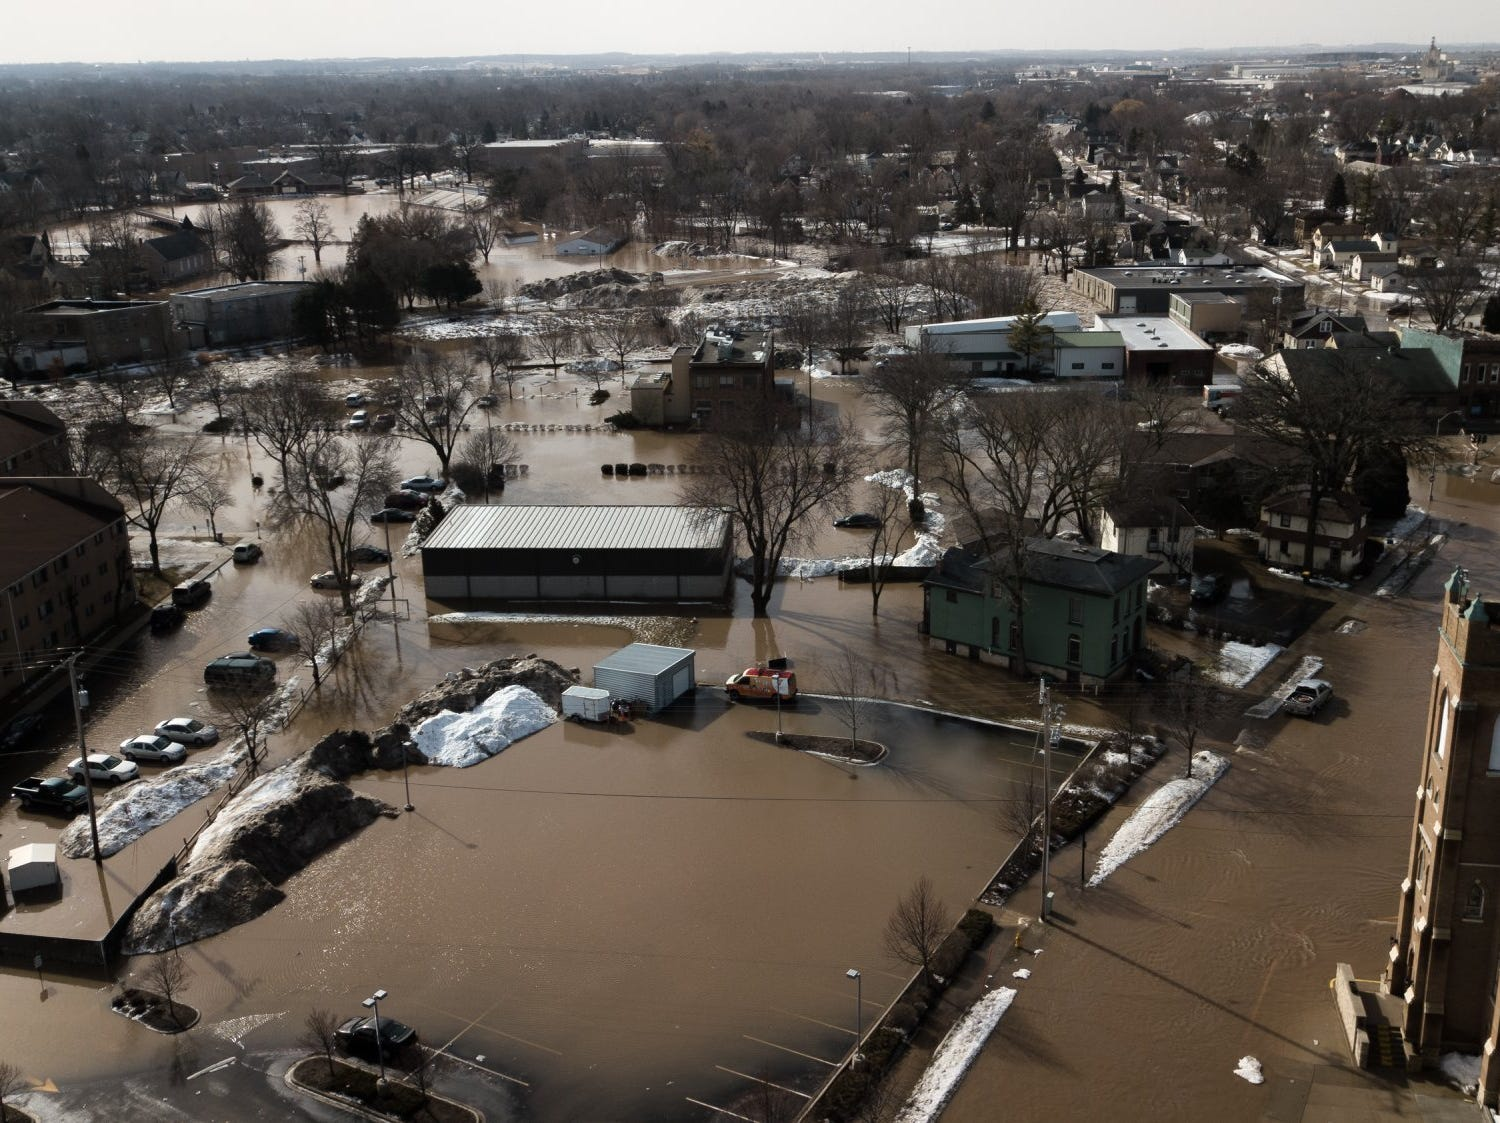 Flooding from the Fond du Lac River spread from Western Avenue down to Military Road Thursday, March 14 in Fond du Lac. This photo was captured with a drone at about 11 a.m.